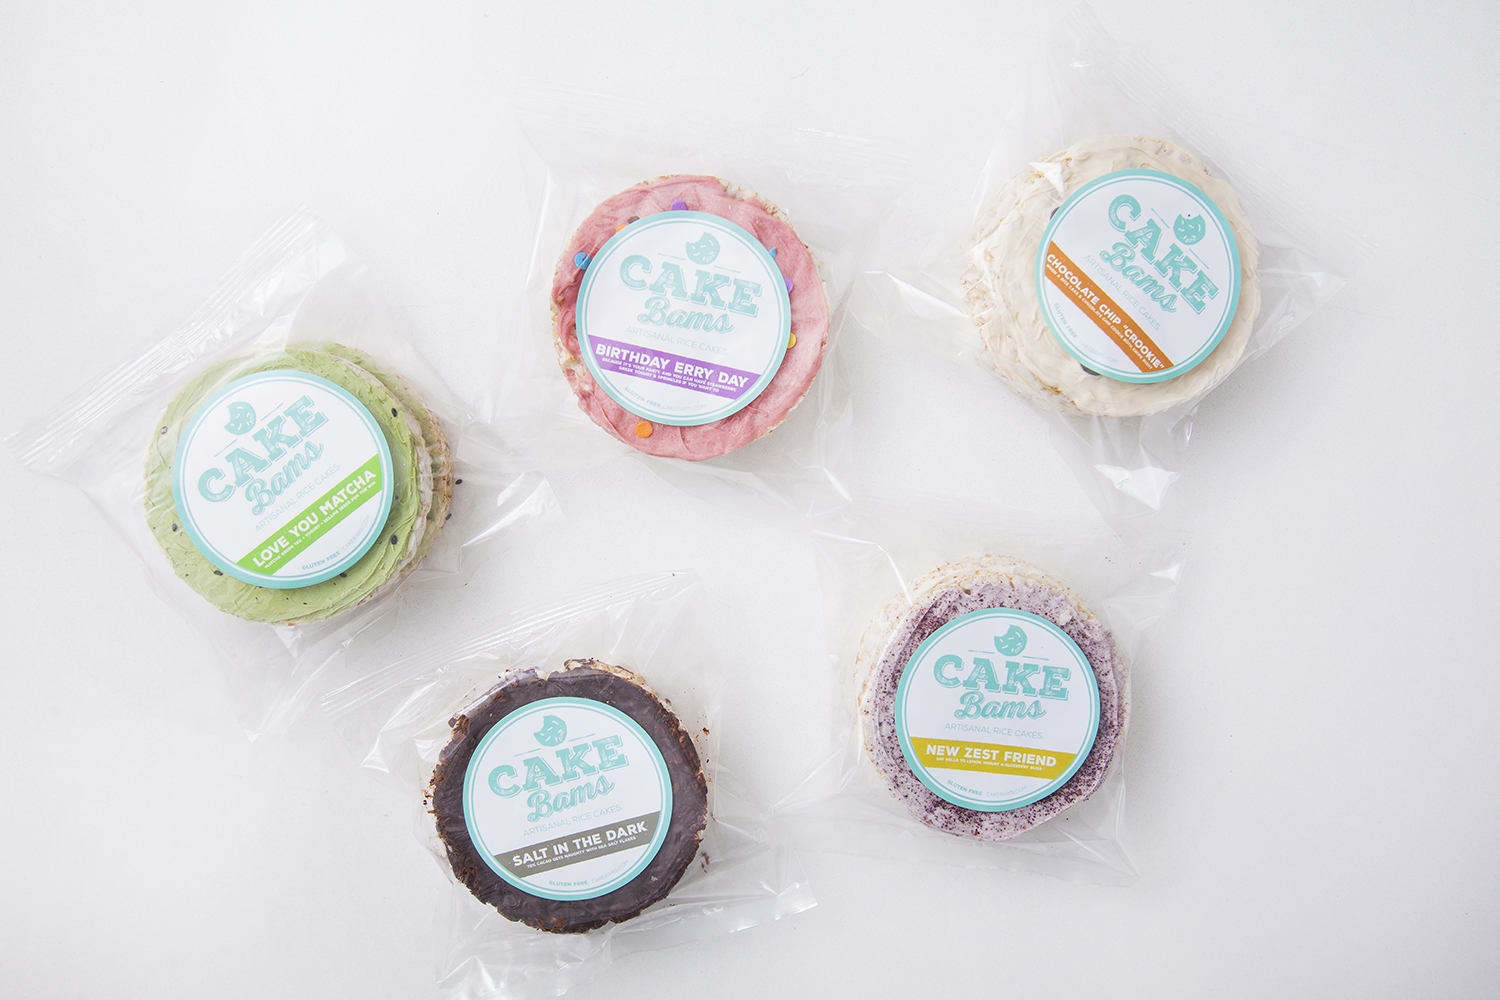 Cake Bams are handcrafted in Los Angeles and immediately packaged for maximum freshness.